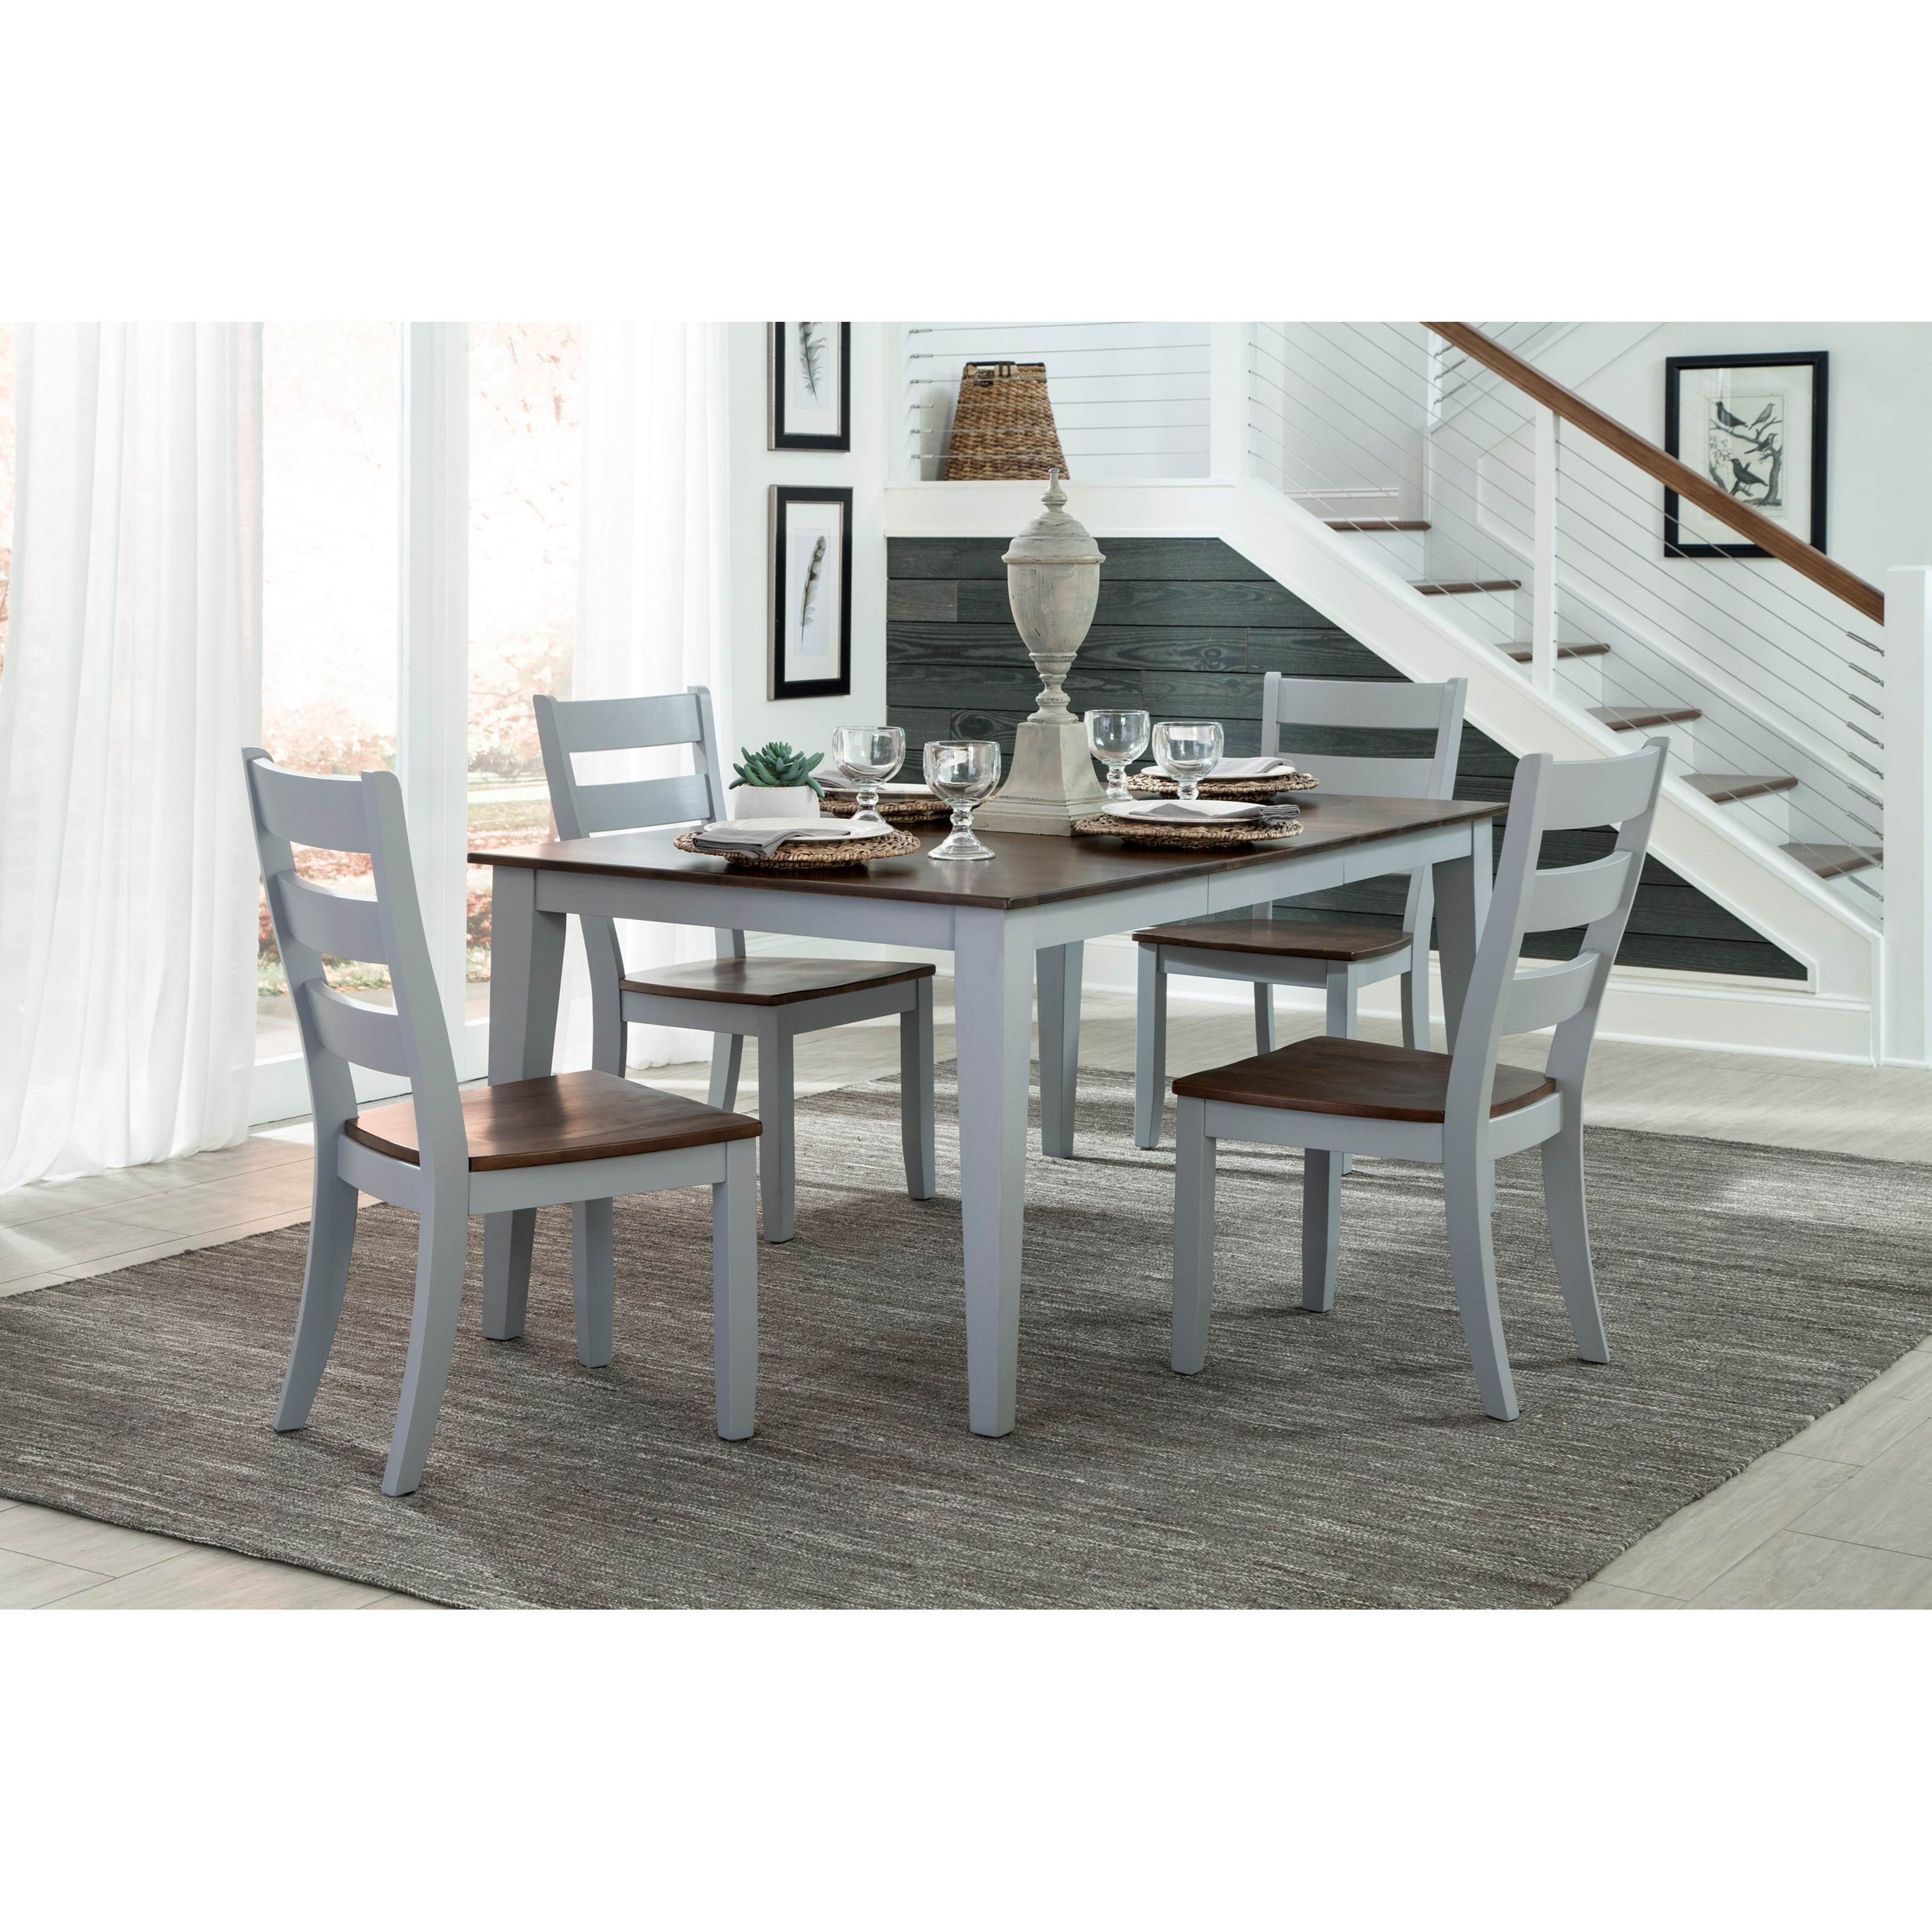 Standard Furniture Cosmo 5 Piece Round Coffee Table Set W: Intercon Small Space 5 Piece Table And Ladder Back Chair